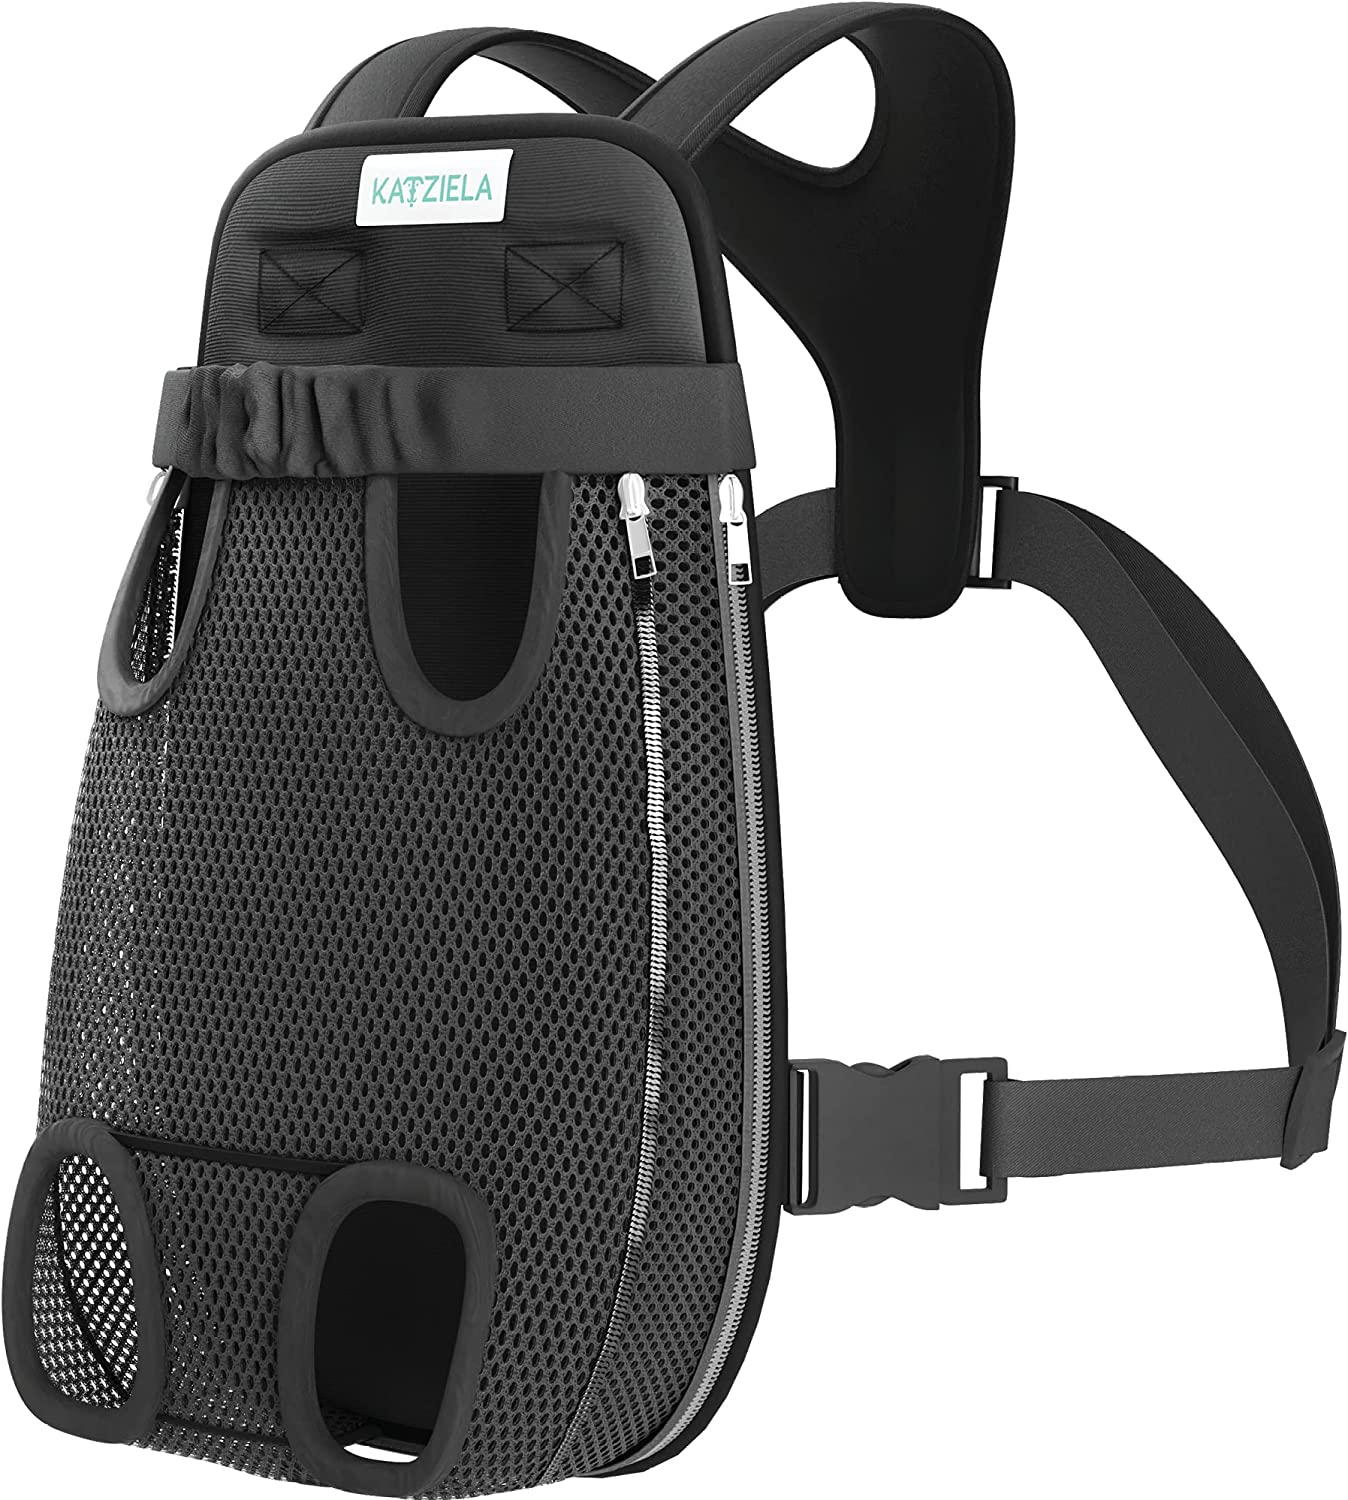 Dog Carrier Front Pack - B and Cat Topics on TV Pet Puppy Safety and trust